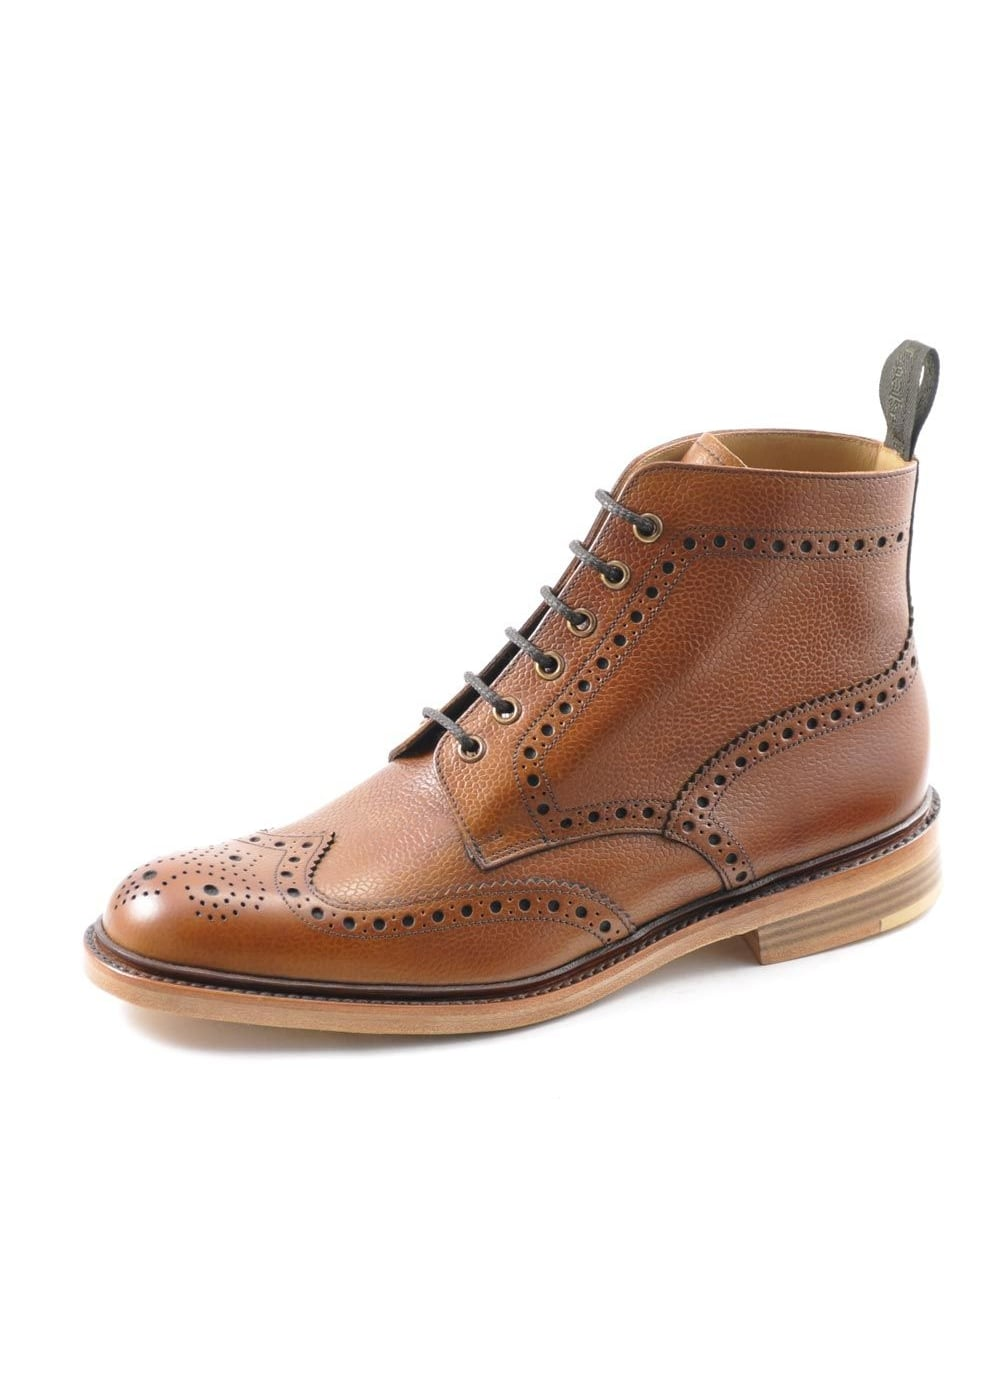 Loake Brown leather Cogswell lace up brogue boots Upper Leather shk 22823